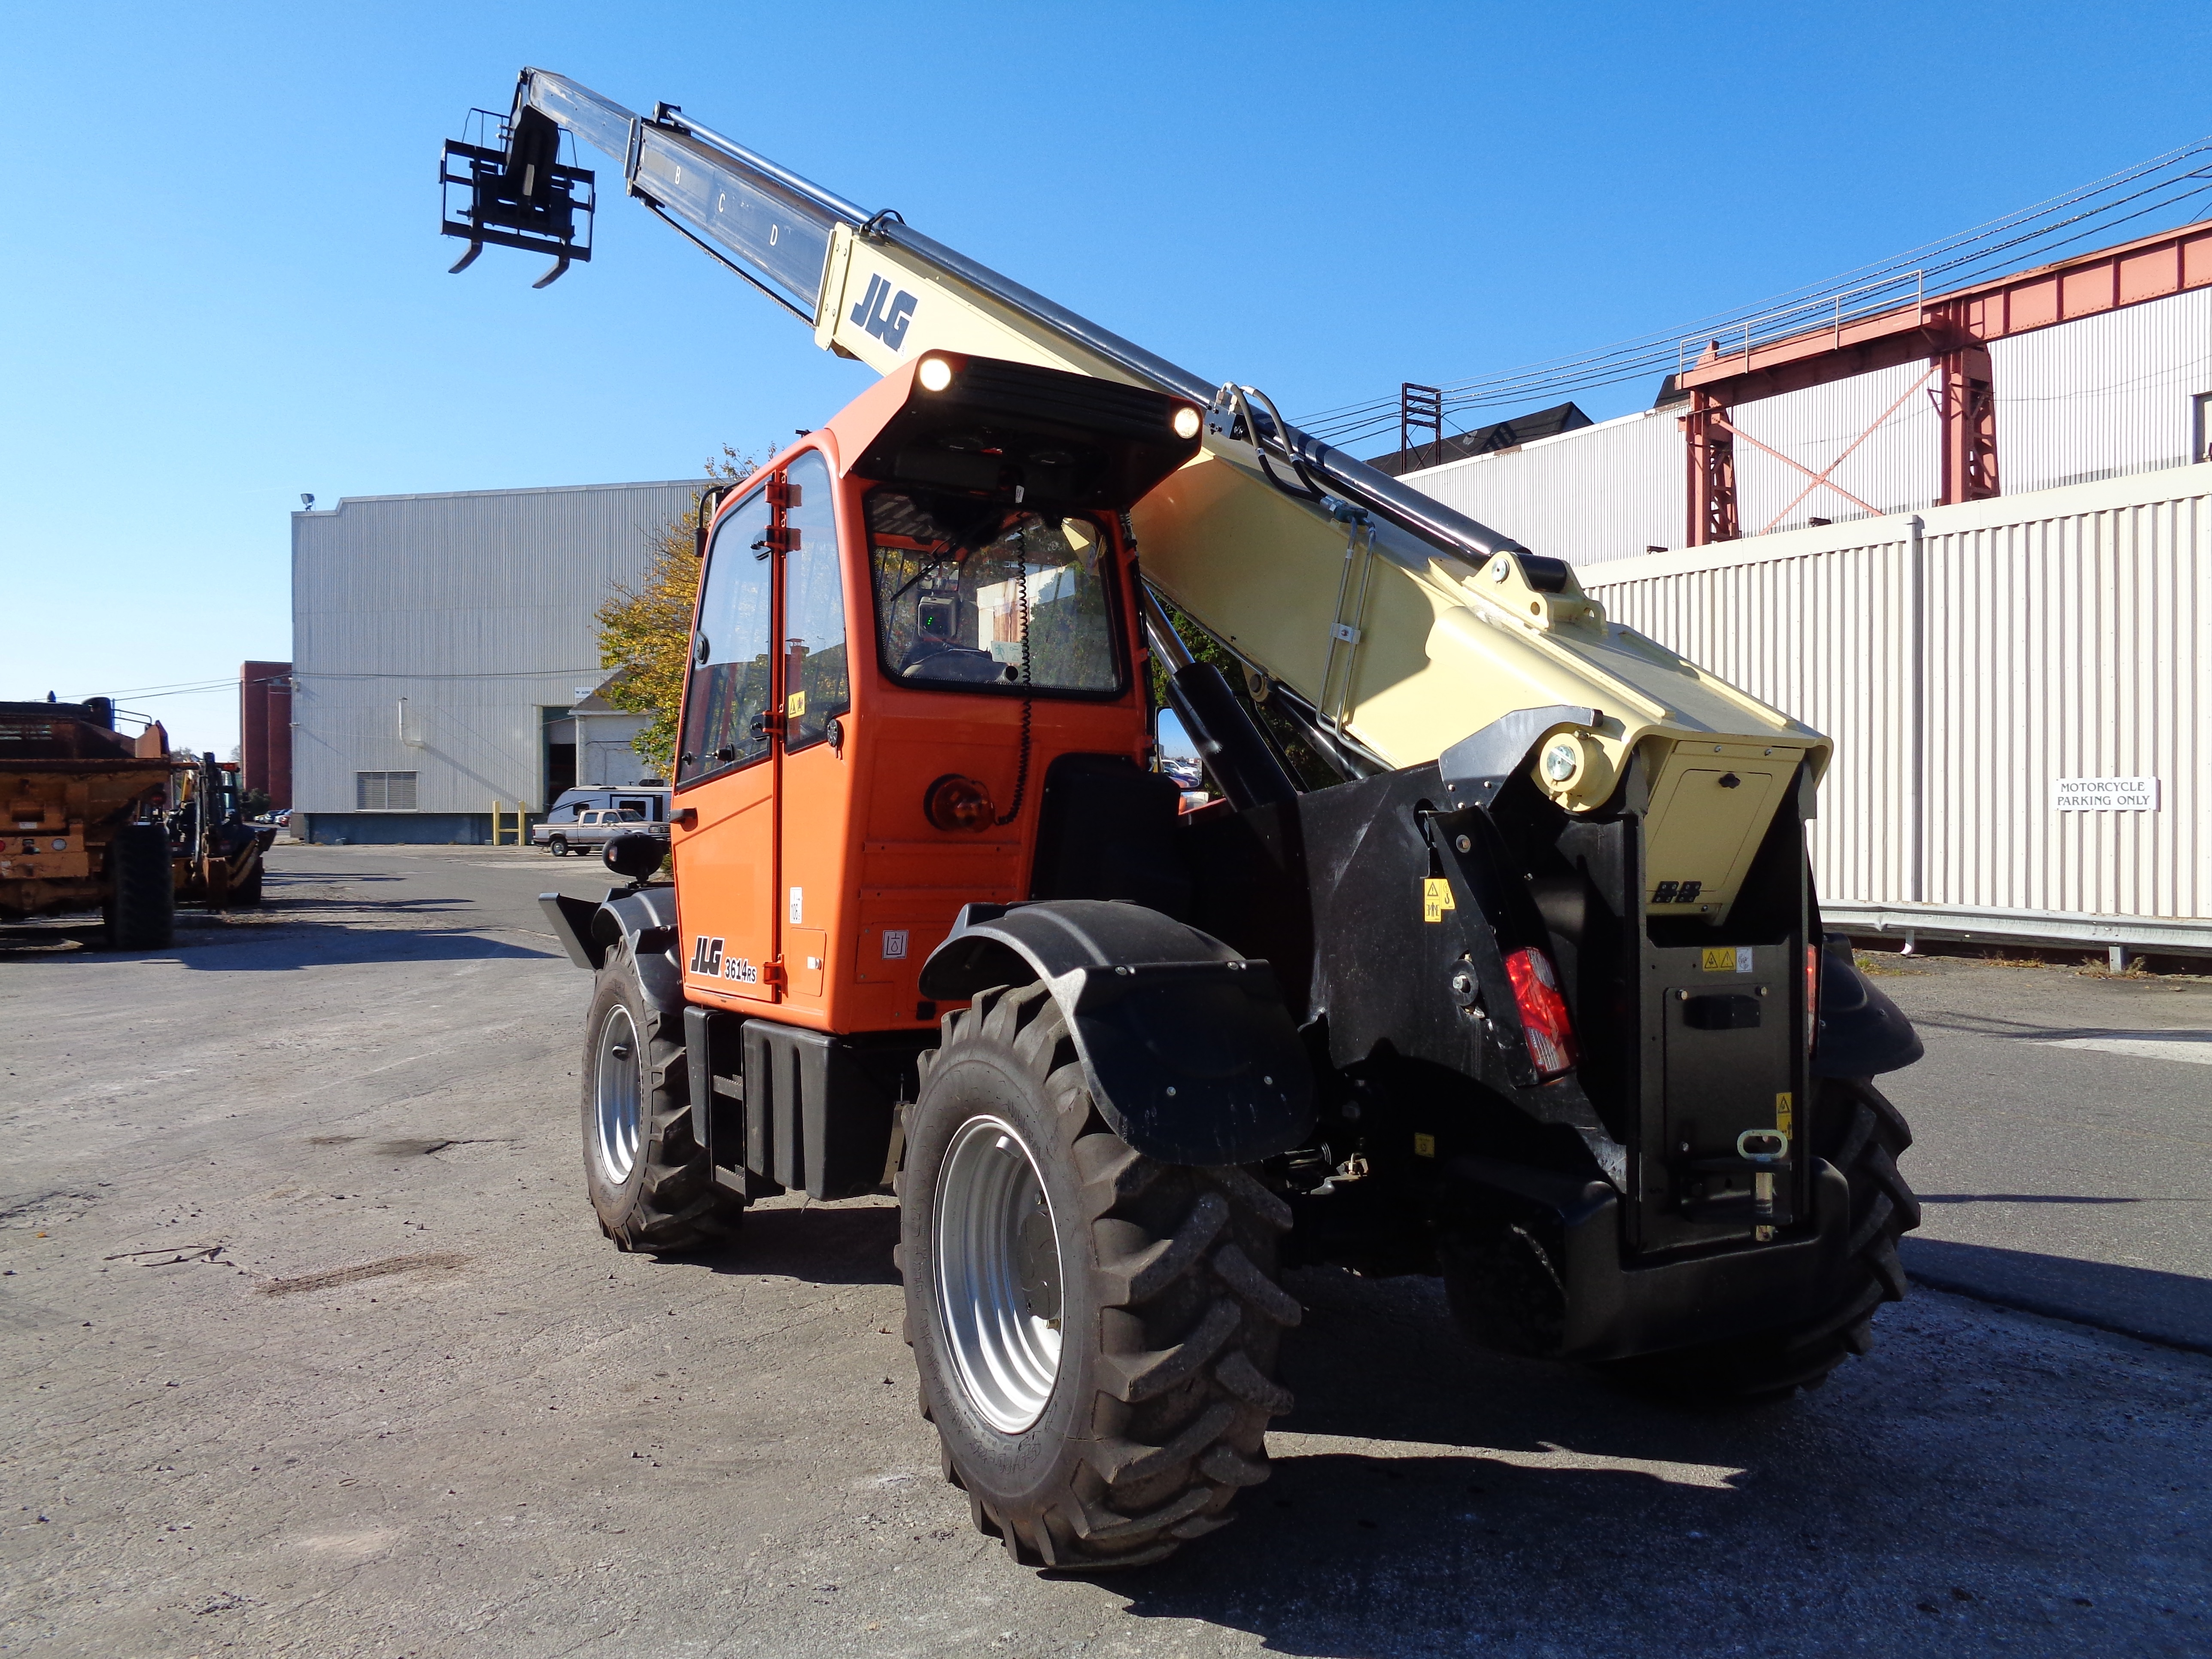 Lot 6 - 2016 JLG 3614RS 8,000 lb Telescopic Forklift